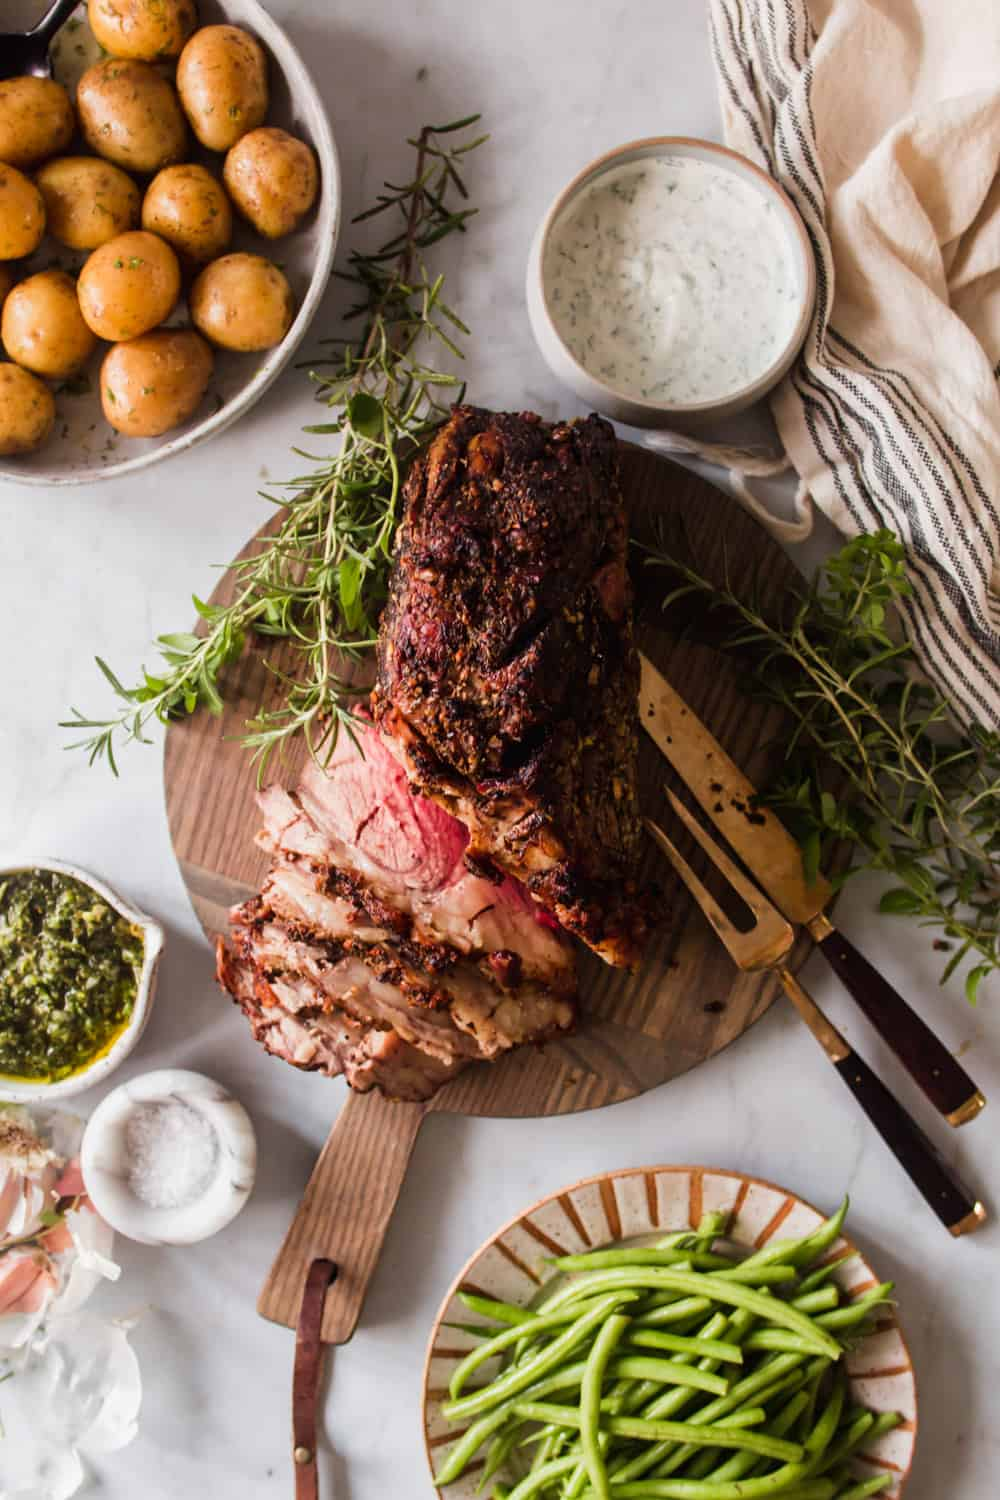 Large sliced beef roast on a wood cutting board